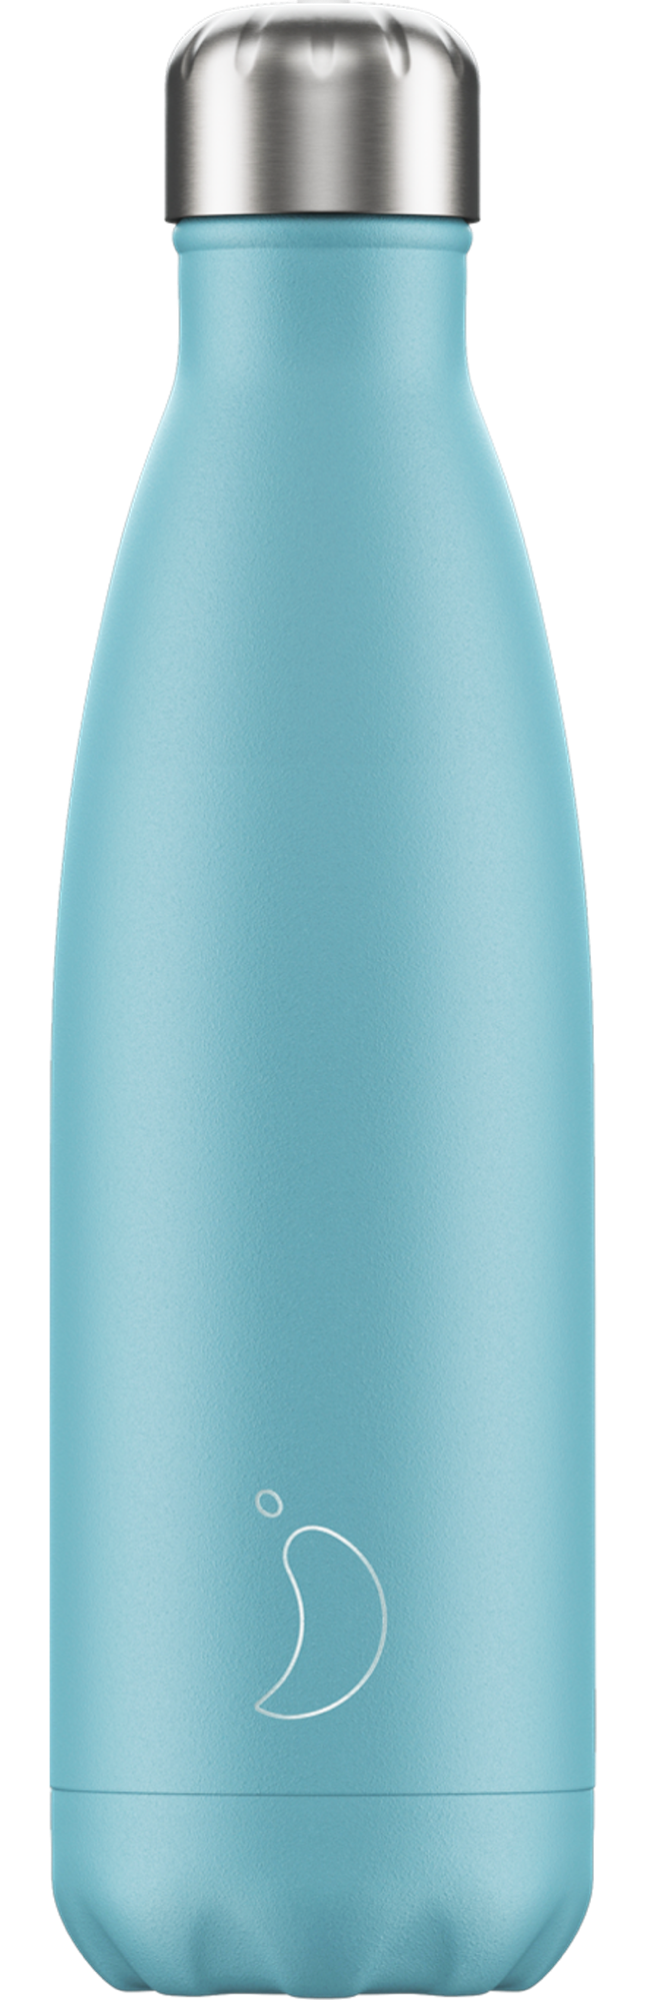 CHILLY'S BOTTLE 500ML - [PASTEL] BLUE